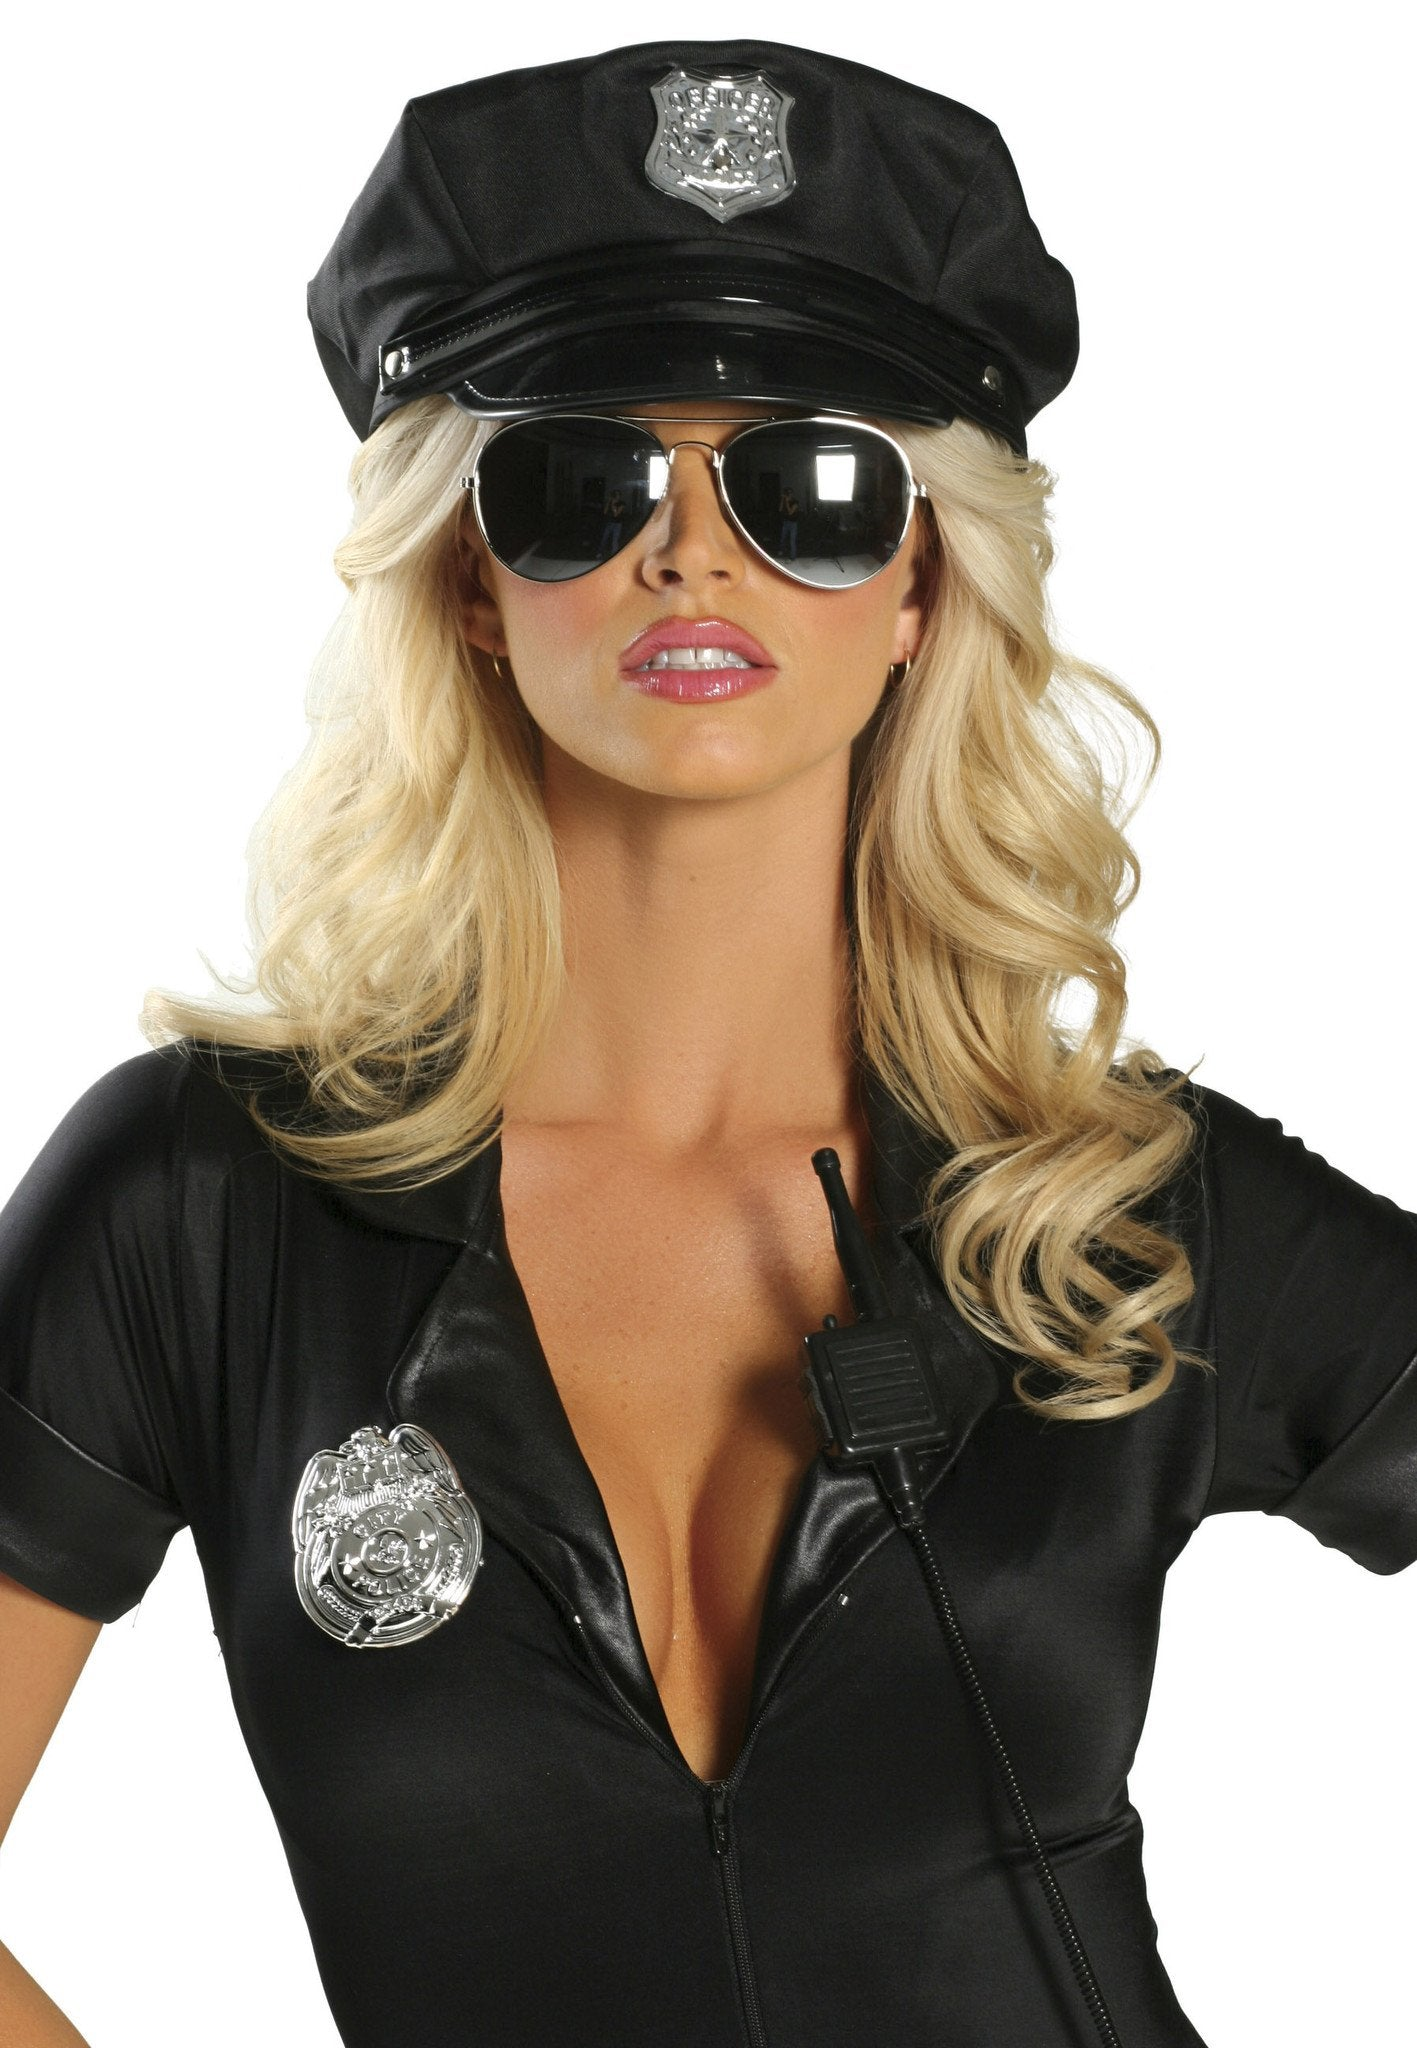 Buy CH105 - Police Hat from Rave Fix for $7.50 with Same Day Shipping Designed by Roma Costume CH105-AS-O/S